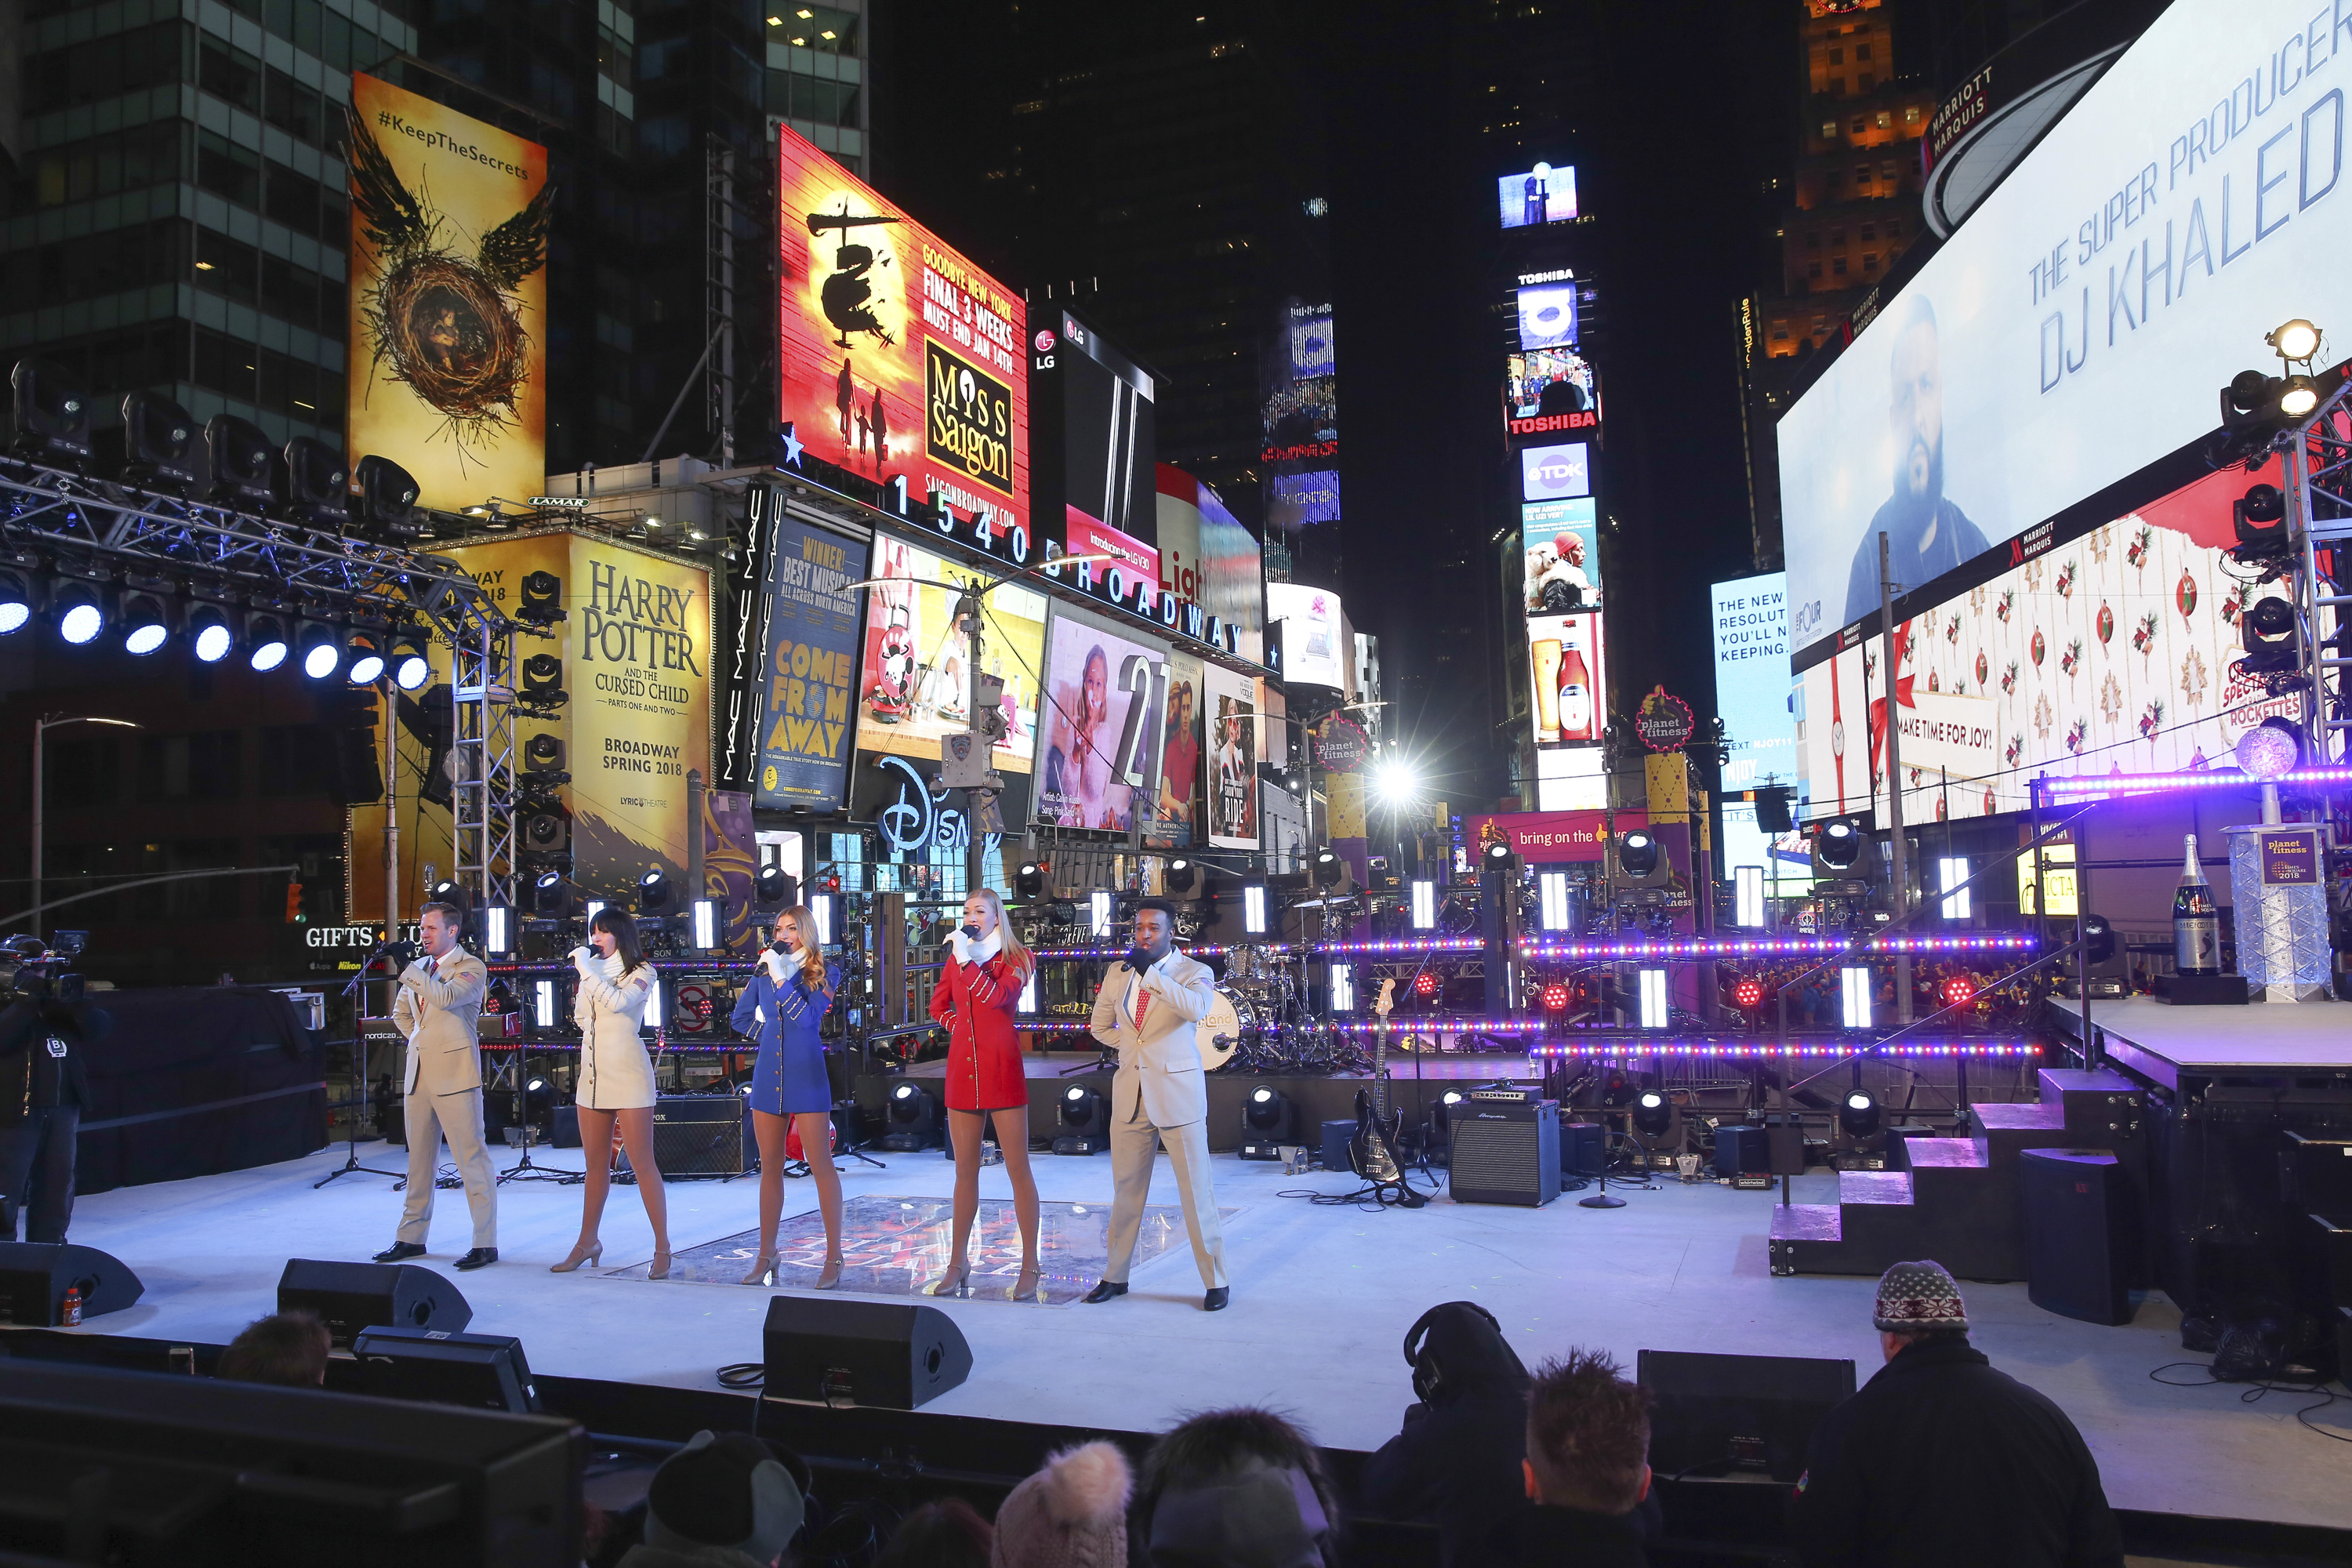 <div class='meta'><div class='origin-logo' data-origin='AP'></div><span class='caption-text' data-credit='Brent N. Clarke/Invision/AP'>The USO Troupe performs at the New Year's Eve celebration in Times Square on Sunday, Dec. 31, 2017, in New York. (Photo by Brent N. Clarke/Invision/AP)</span></div>